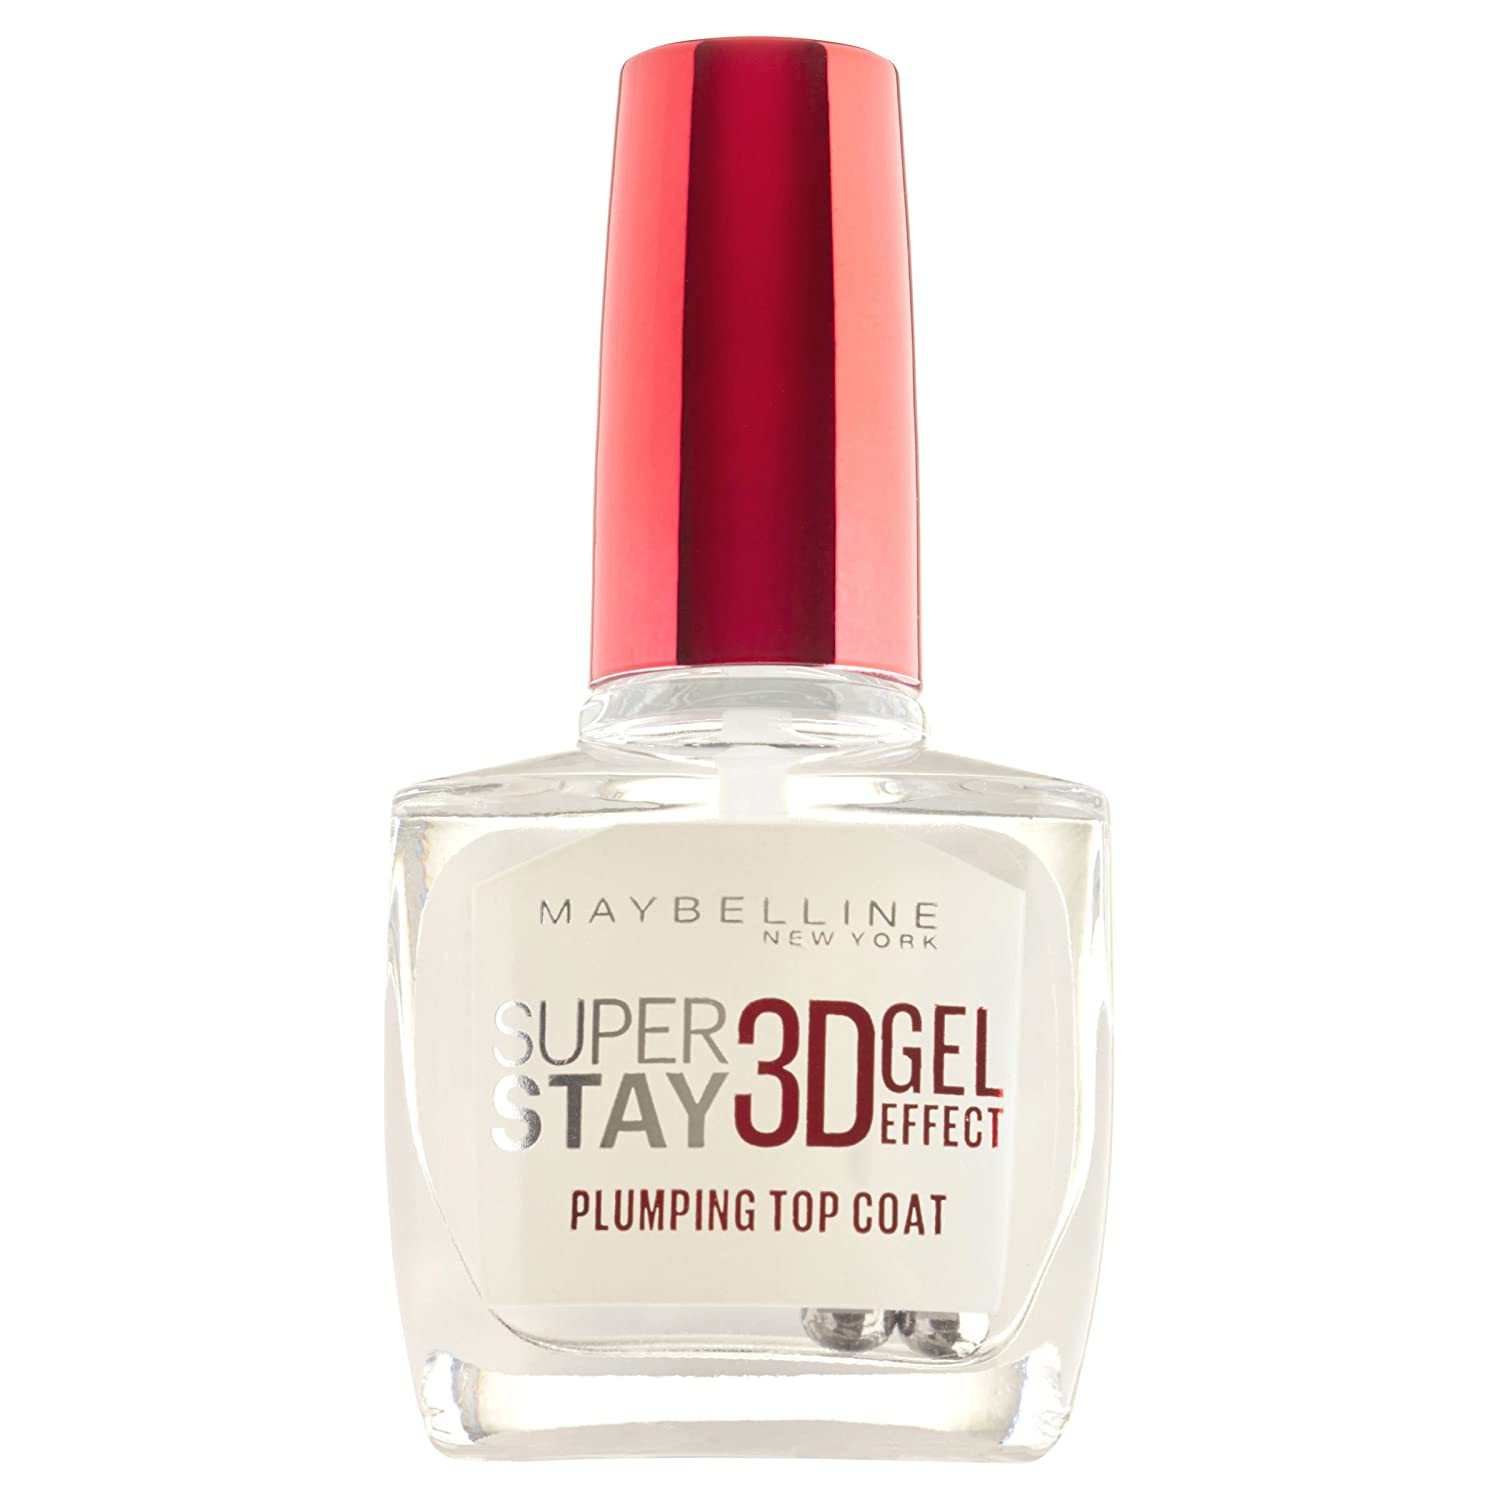 Maybelline Superstay 3D Gel Effect Plumping Top Coat L'Oreal 3600531318949